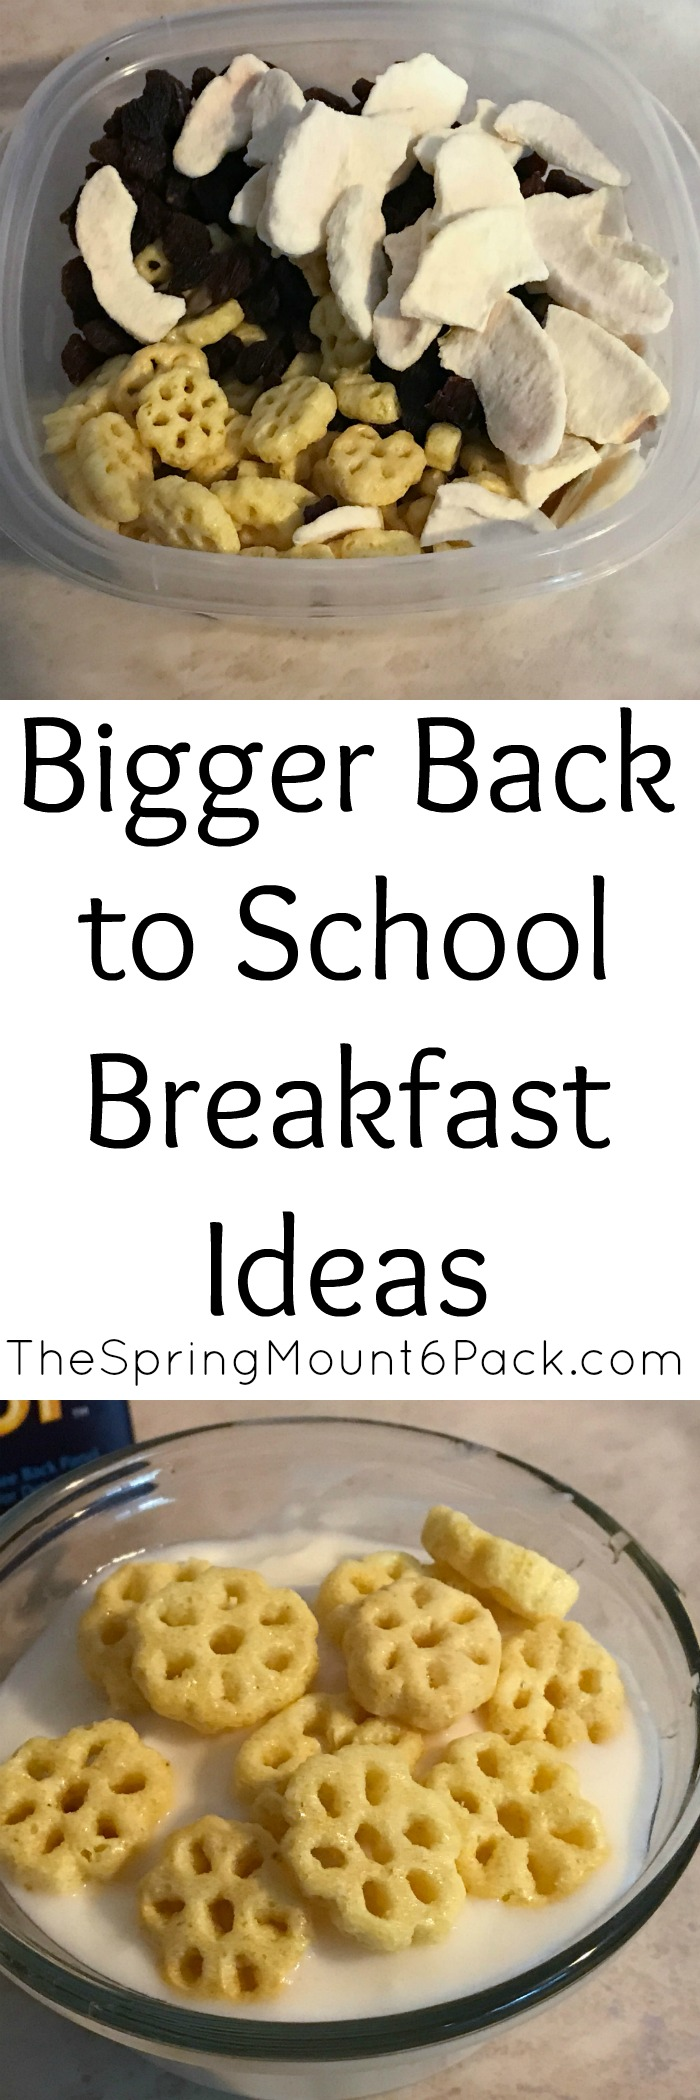 Need back to school breakfast ideas? I have some bigger breakfast ideas that are perfect for busy mornings or afterschool snacks.